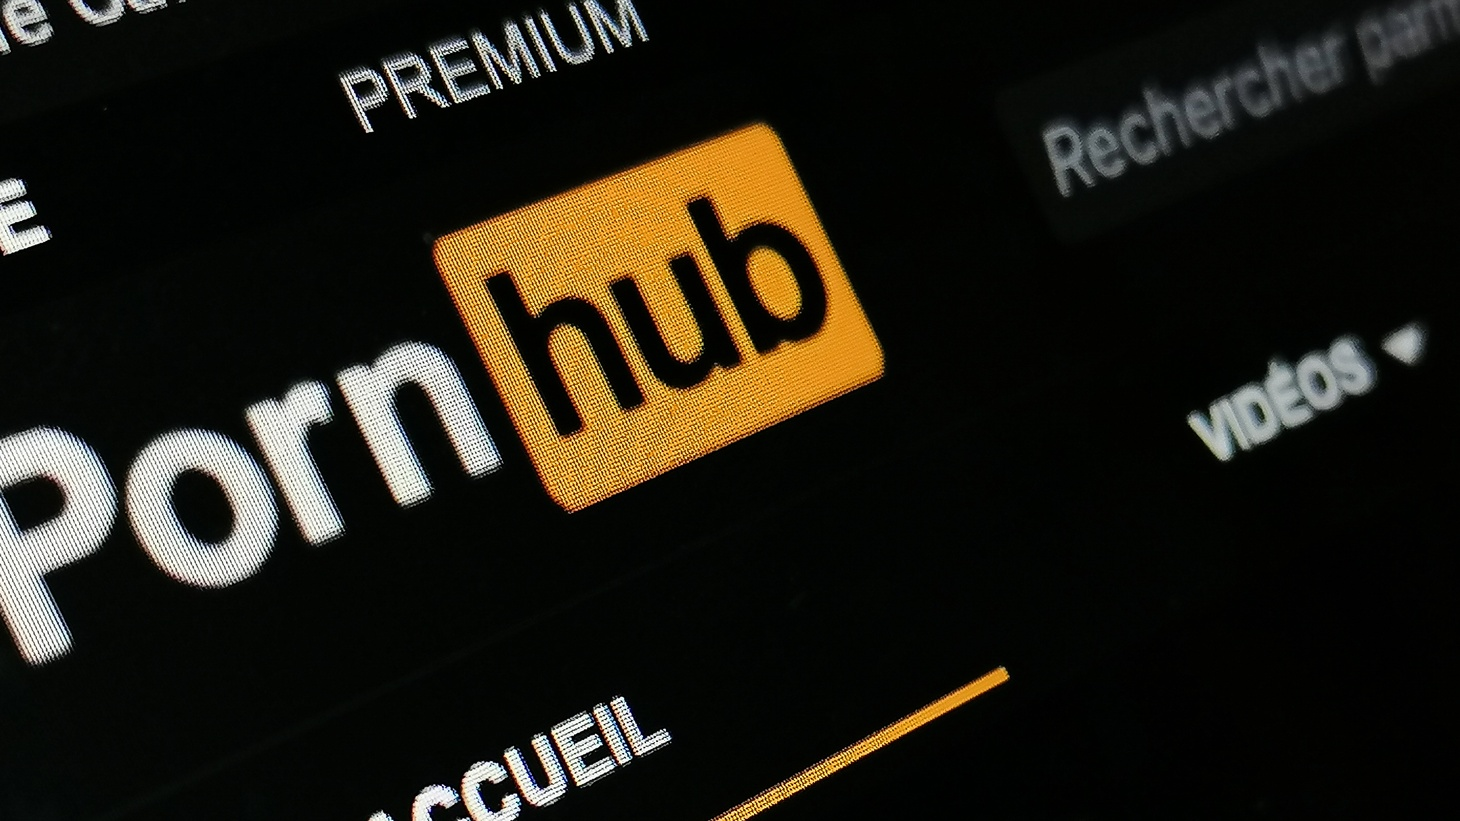 The website Pornhub has taken down 80% of its content and plans to verify users starting January 2021.